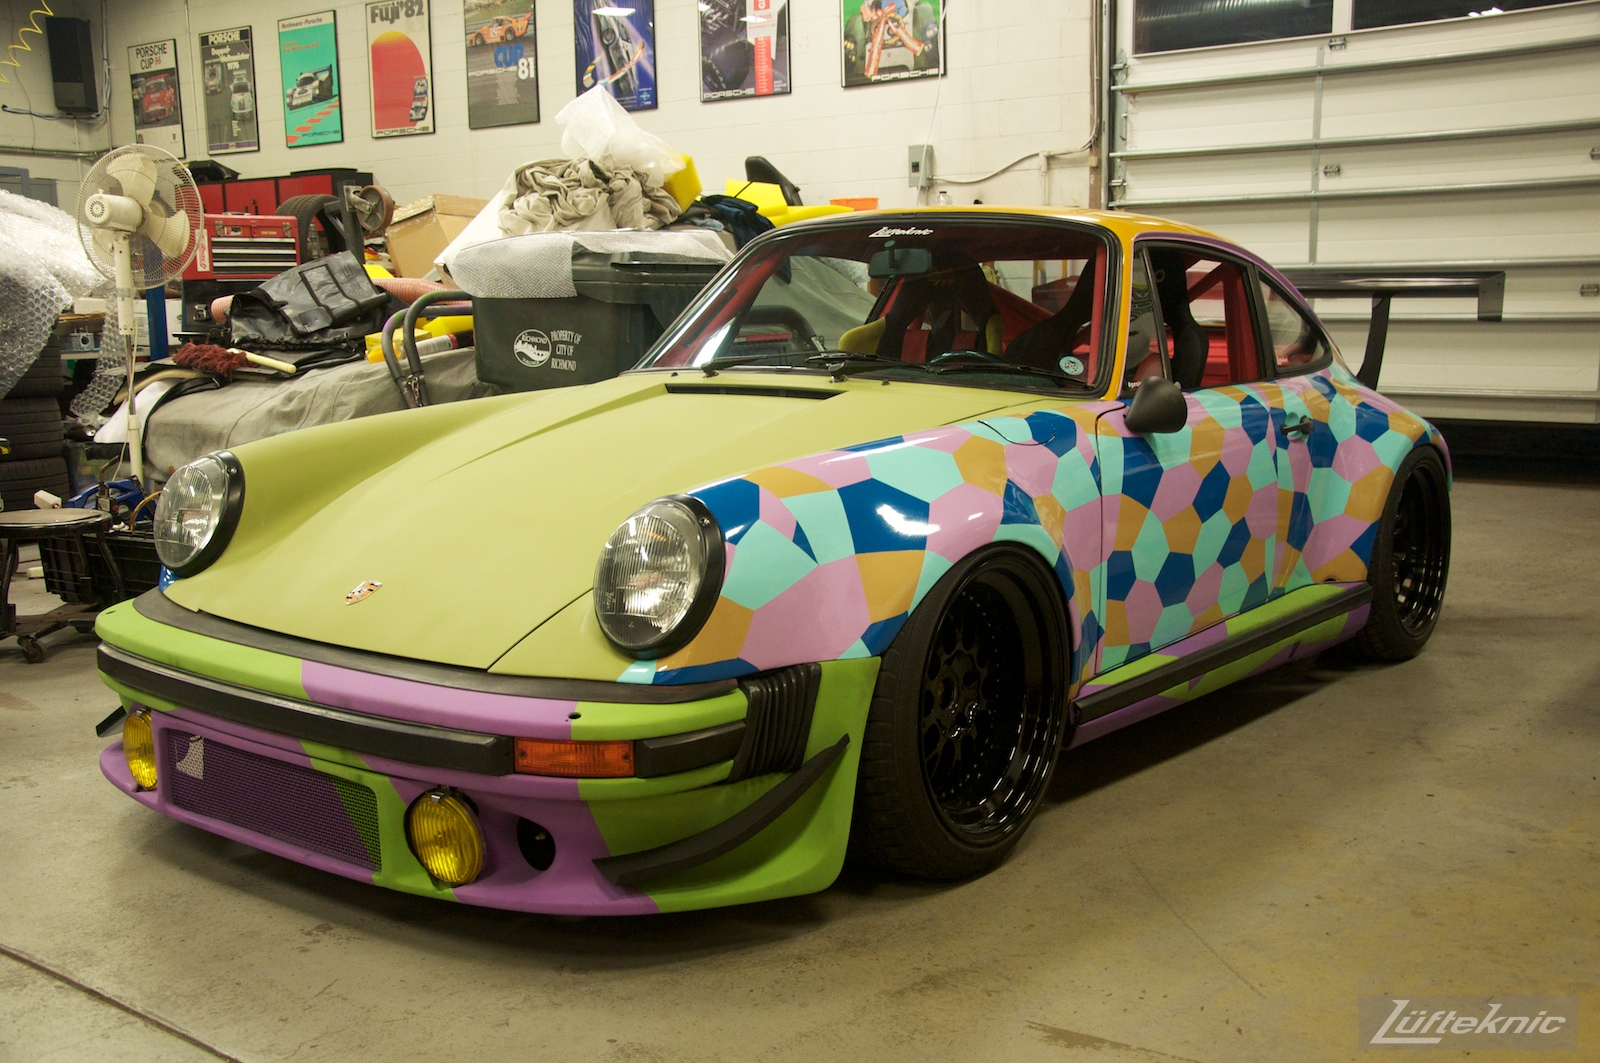 Lüfteknic #projectstuka Porsche 930 Turbo is complete, 4:30am.